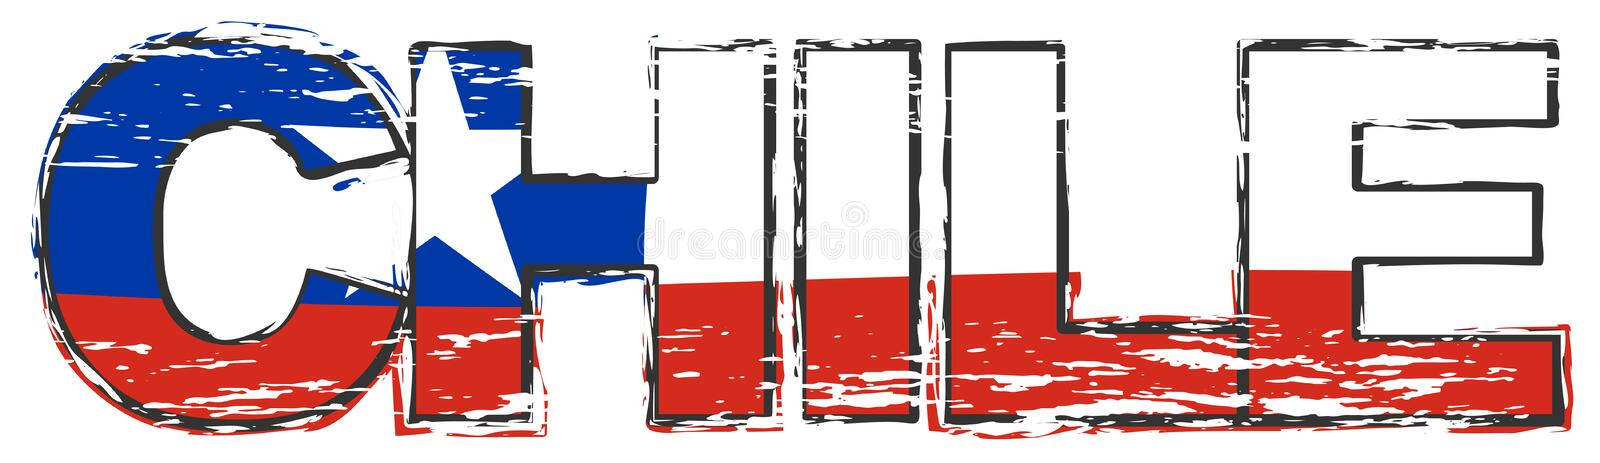 Word CHILE with Chilean national flag under it, distressed grunge look royalty free illustration